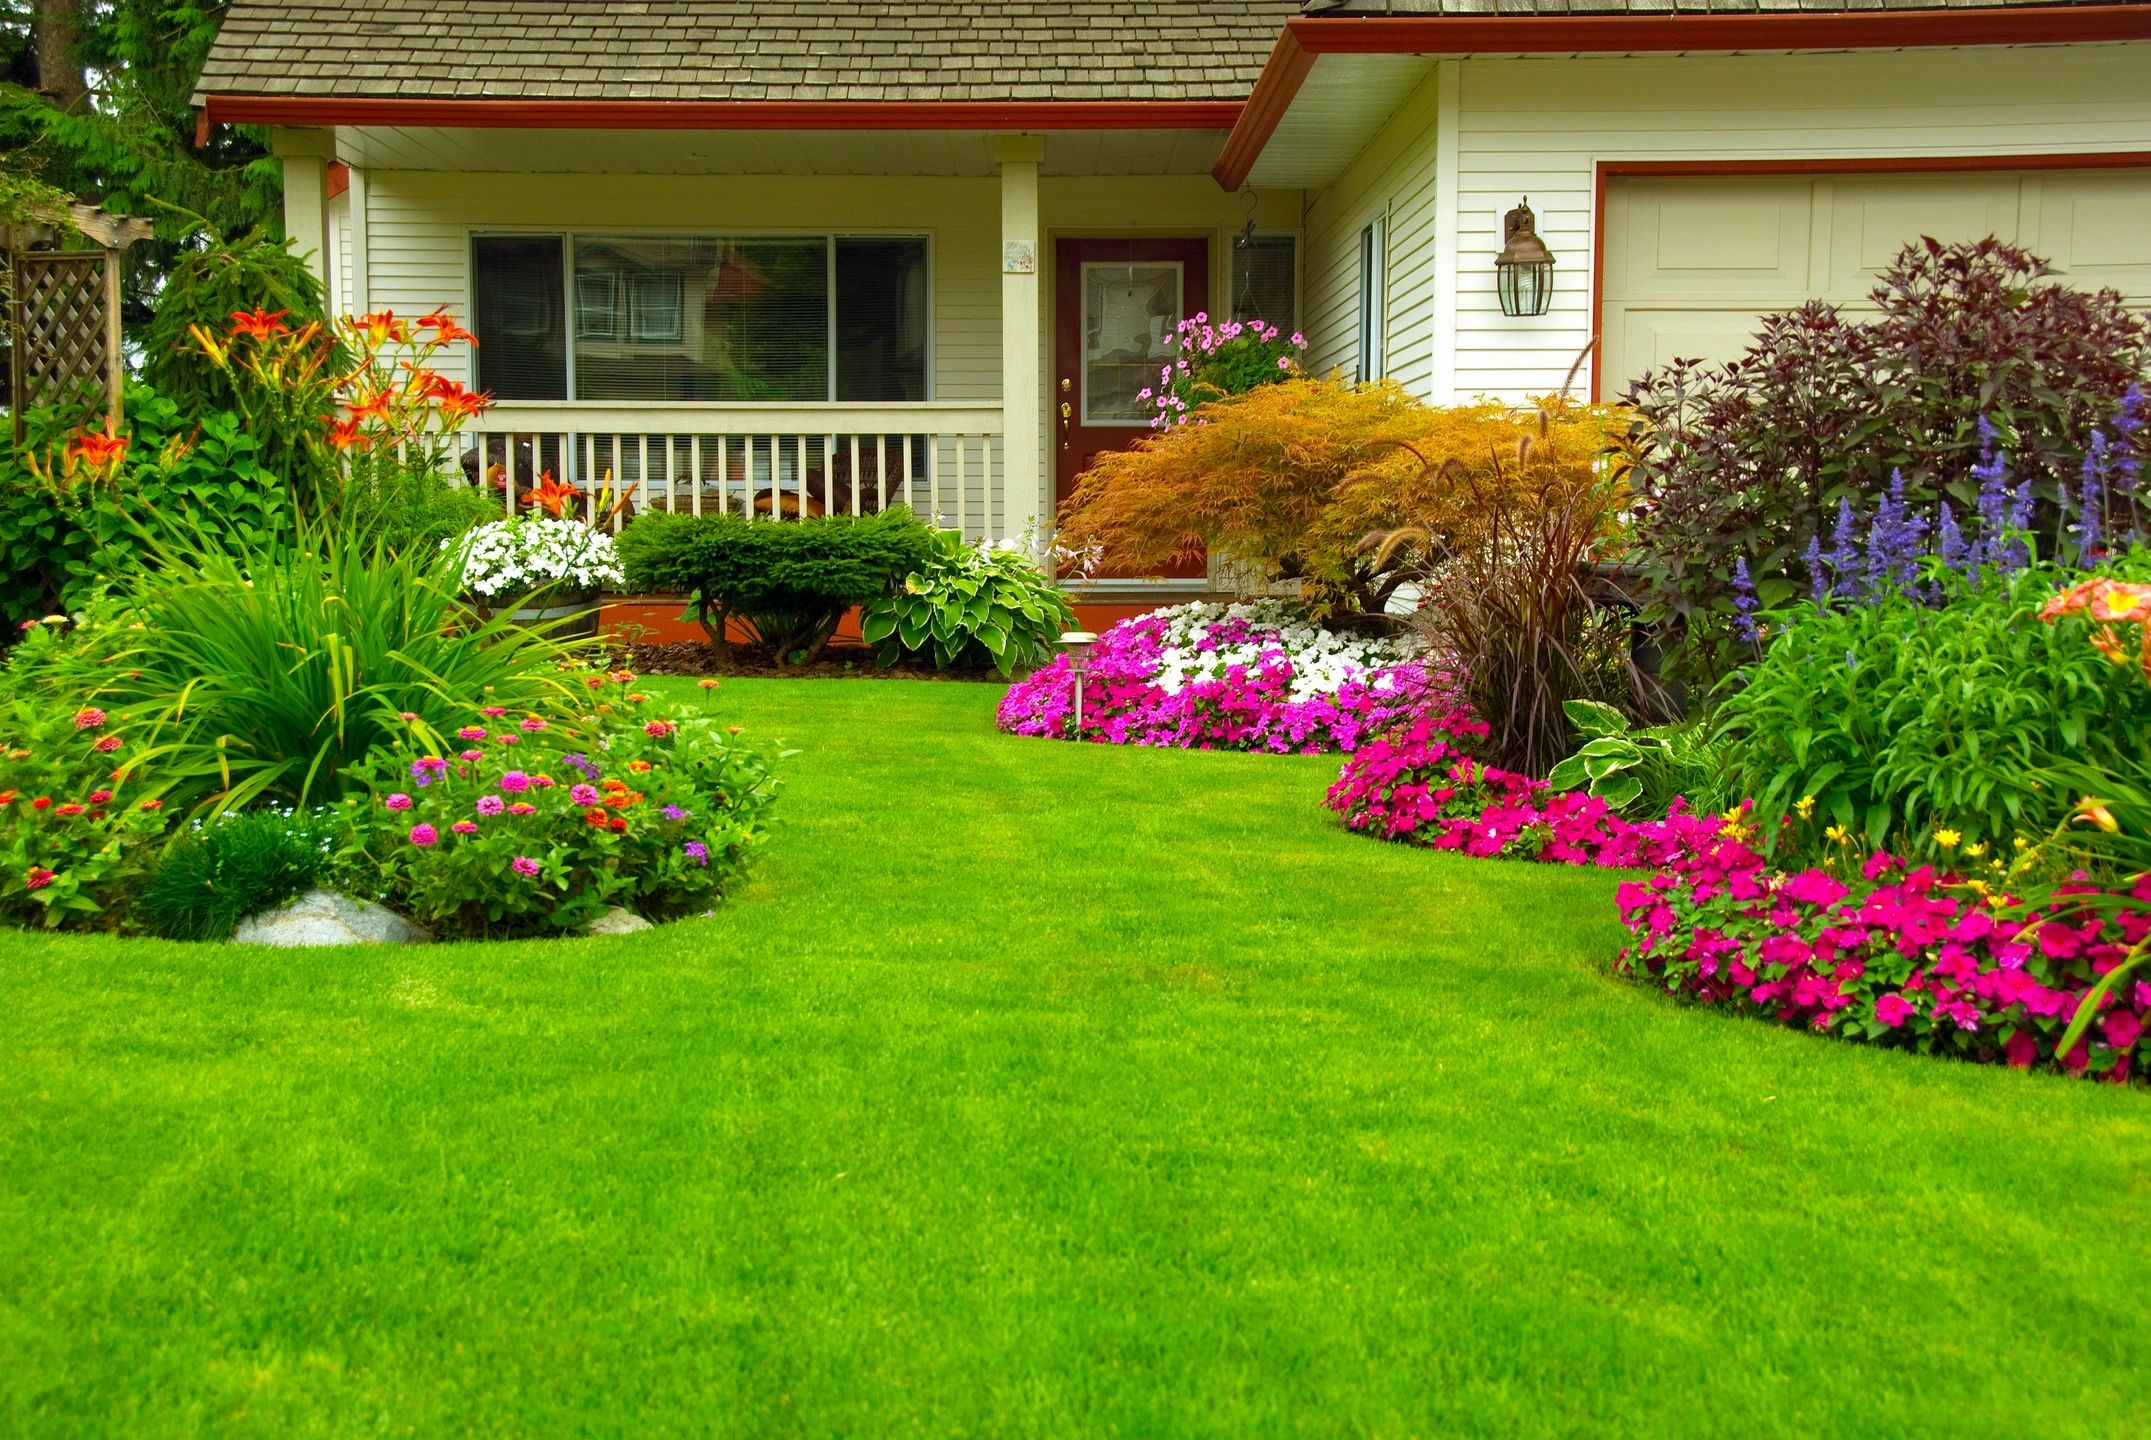 Lawn Mowing Landscaping Marty Mows Crofton Maryland